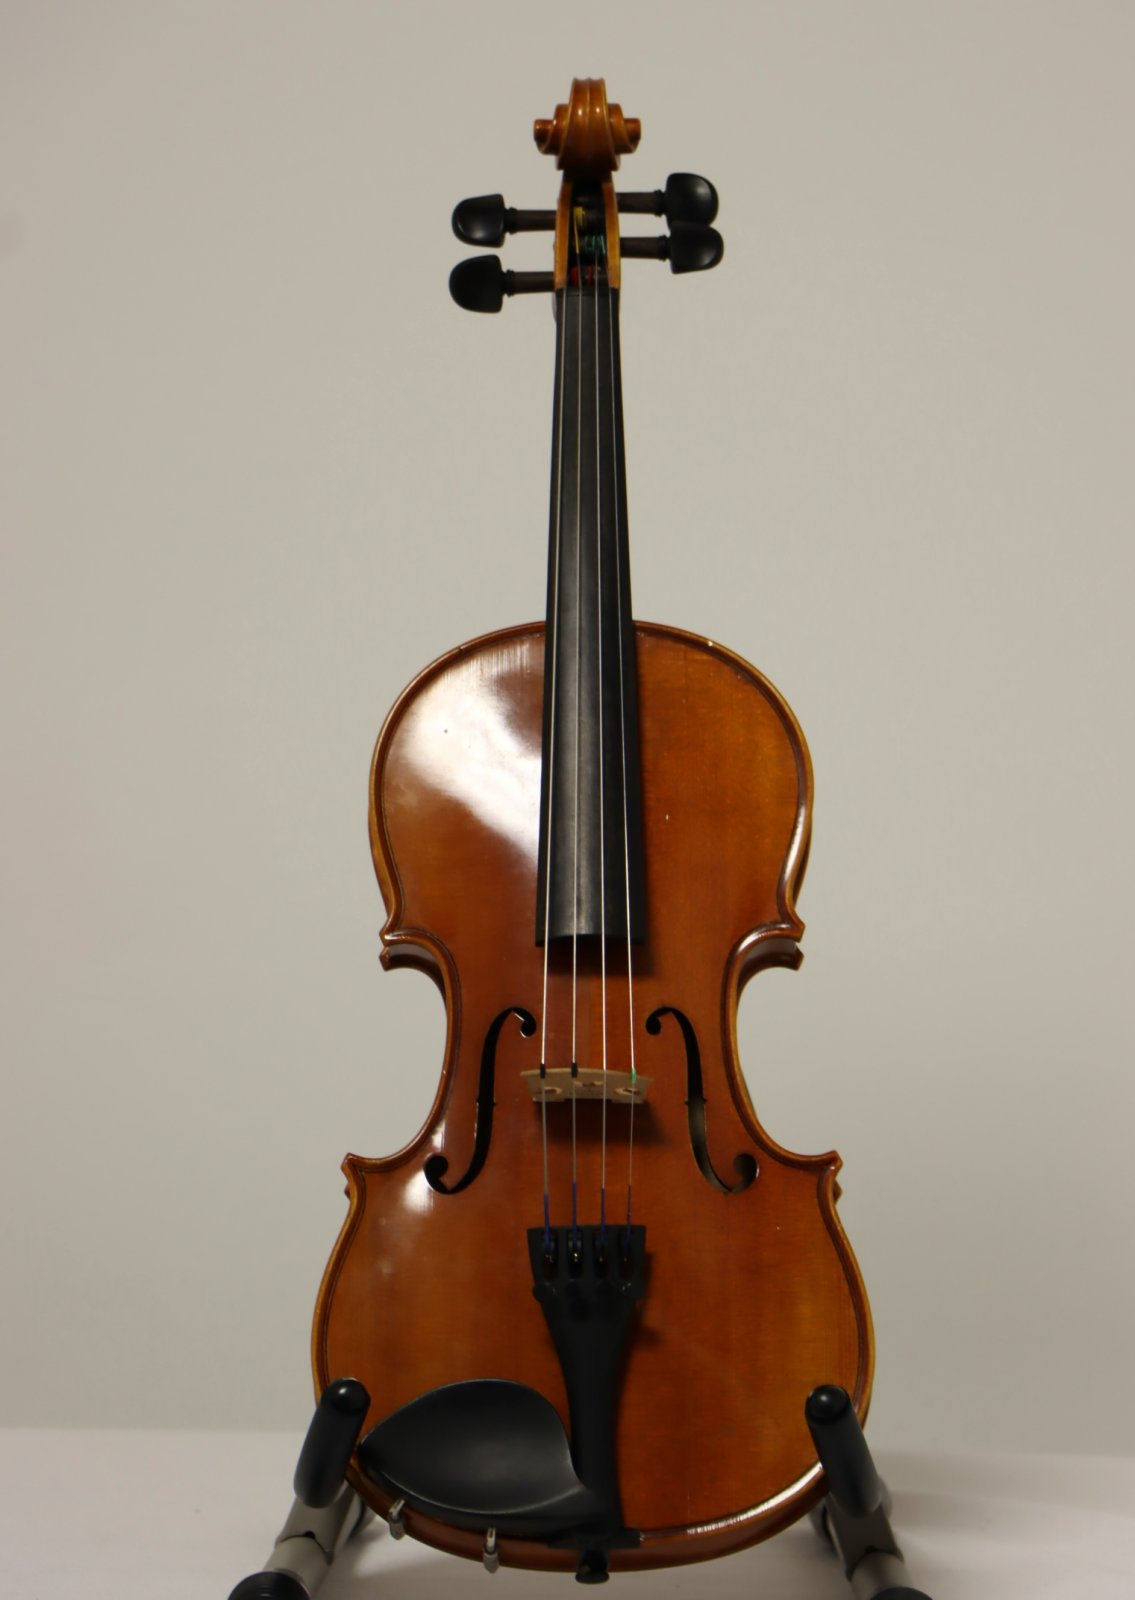 USED Eastman 1/2 Size Student Violin 2009 Model VL80 with Hard Case and Bow